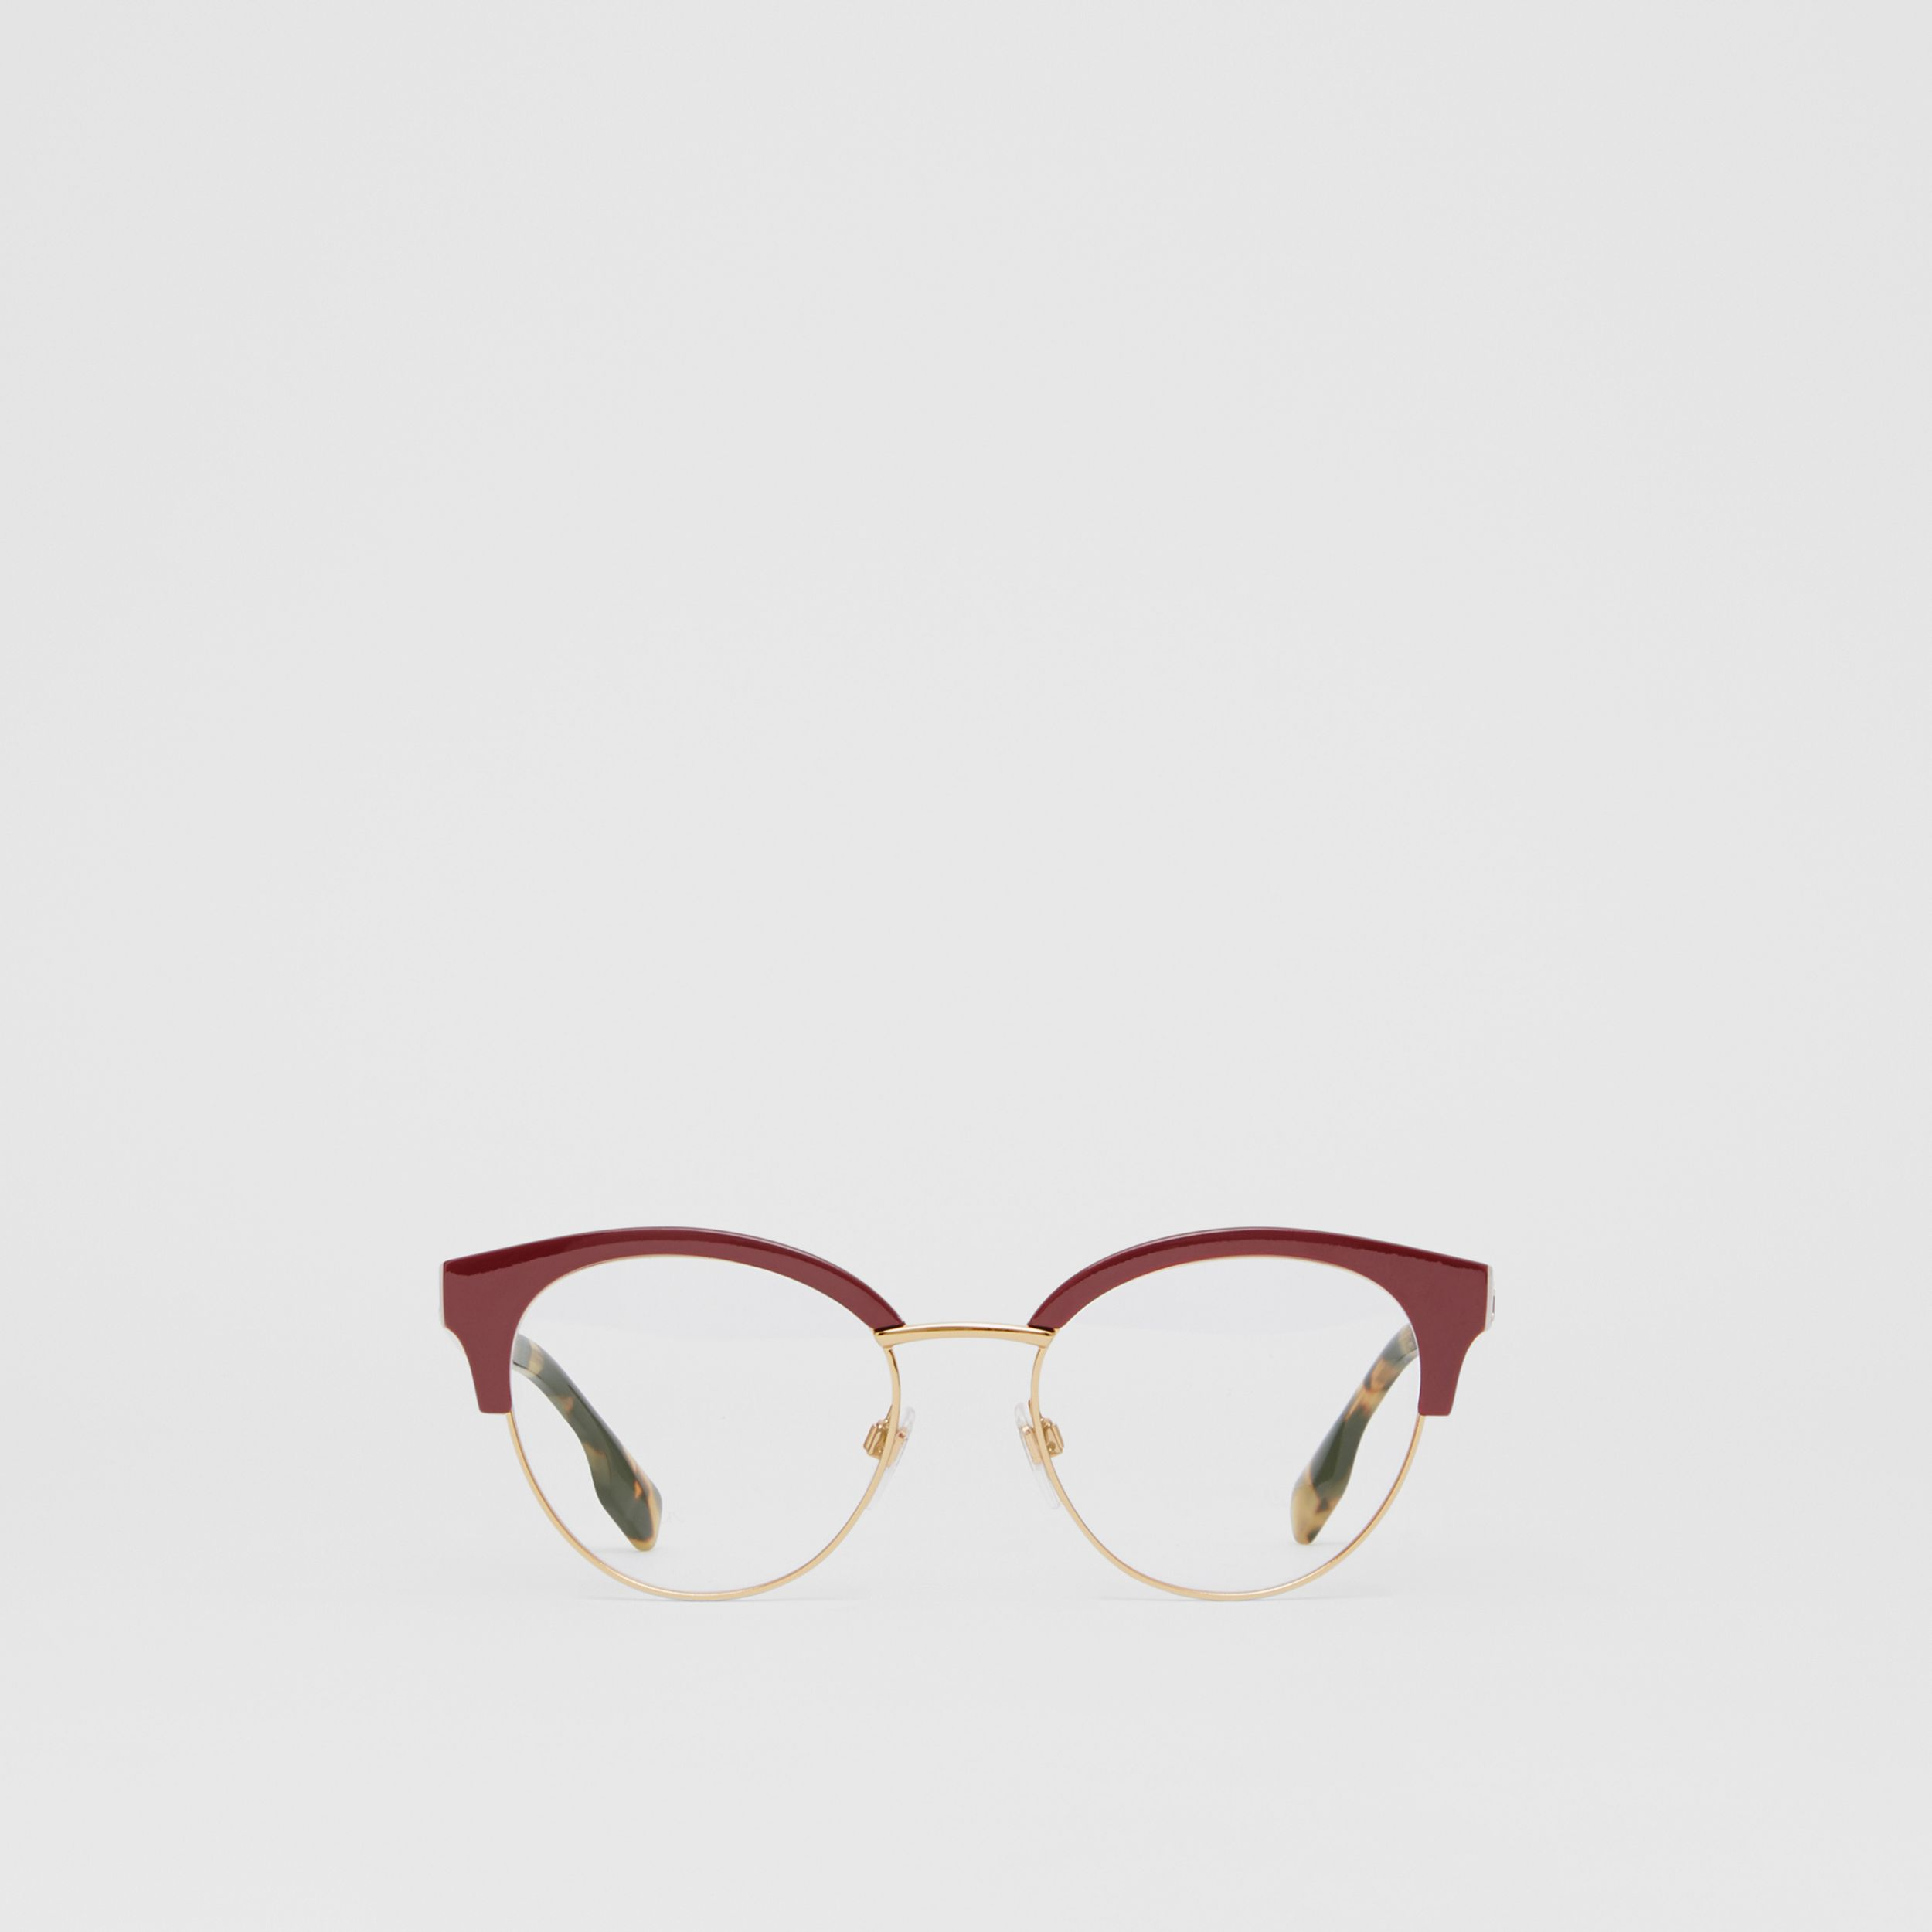 Cat-eye Optical Frames in Burgundy - Women | Burberry - 1